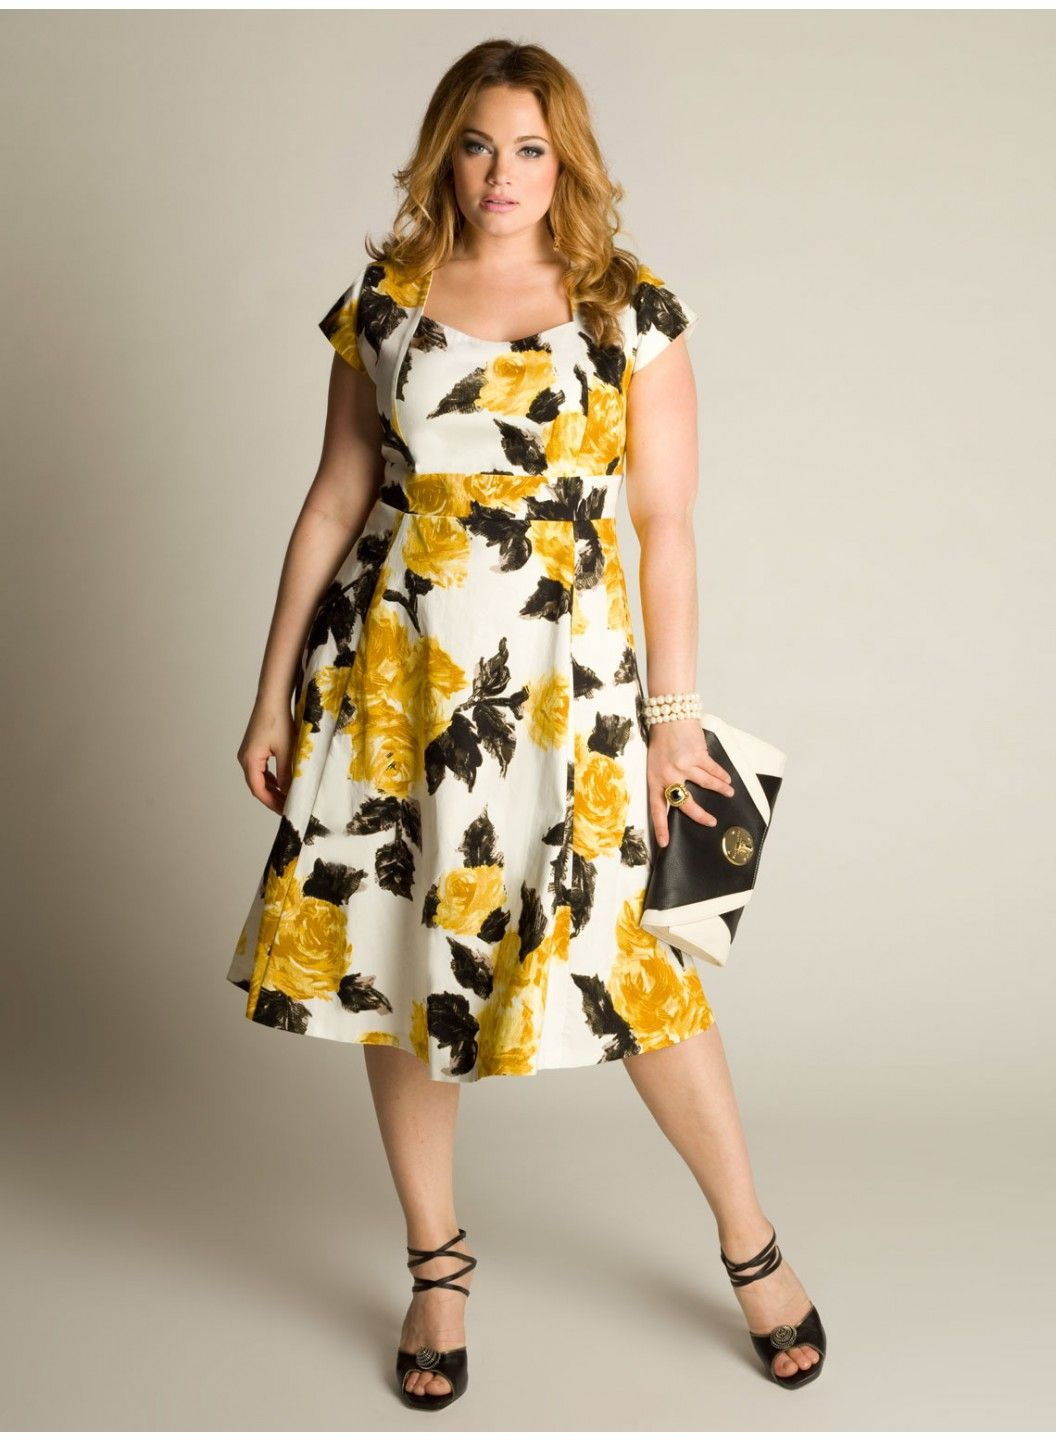 evitta cotton dress- i usually hate big prints in plus sized